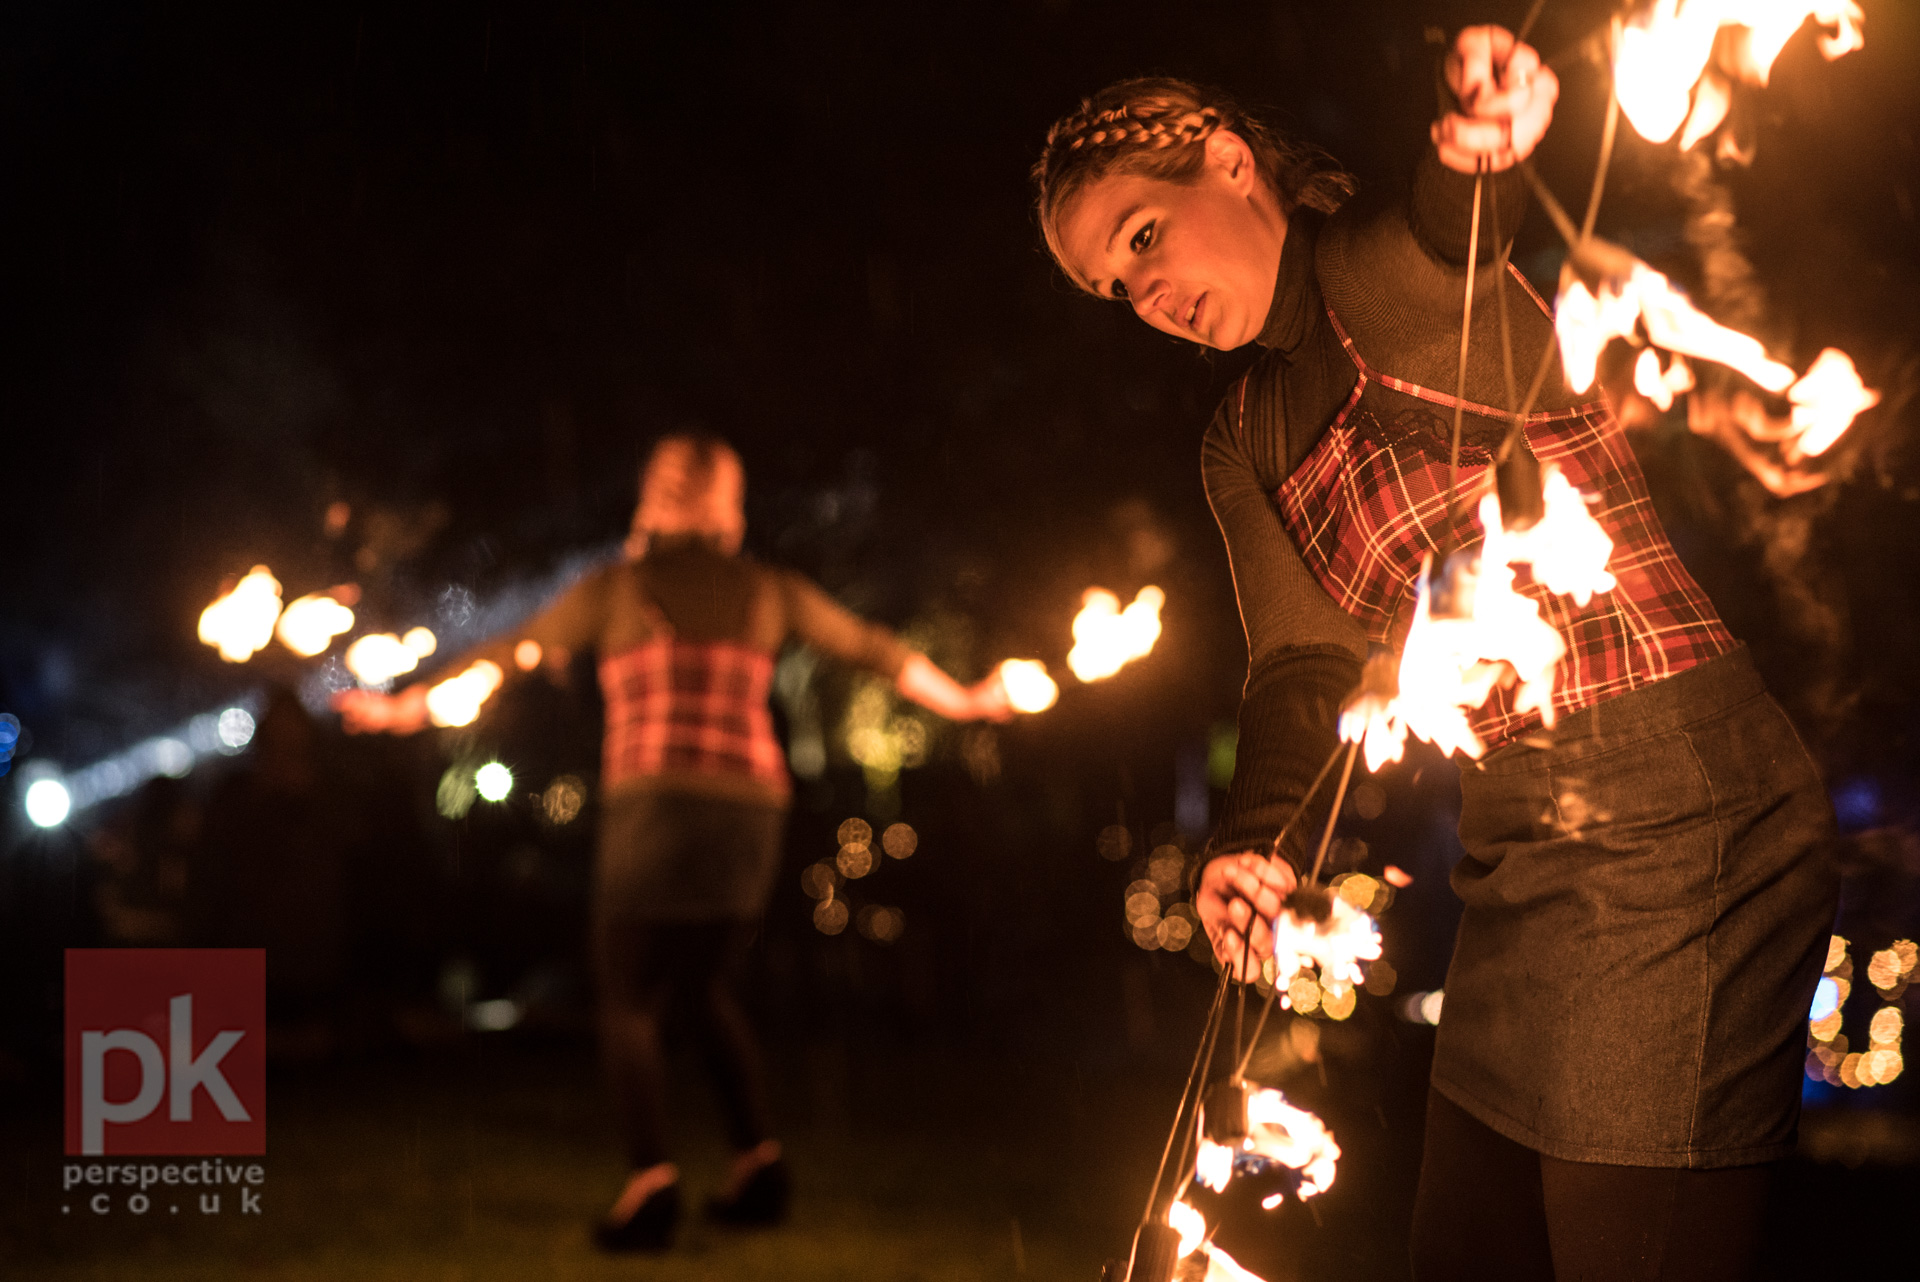 More fire act goodness in Perth, Scotland